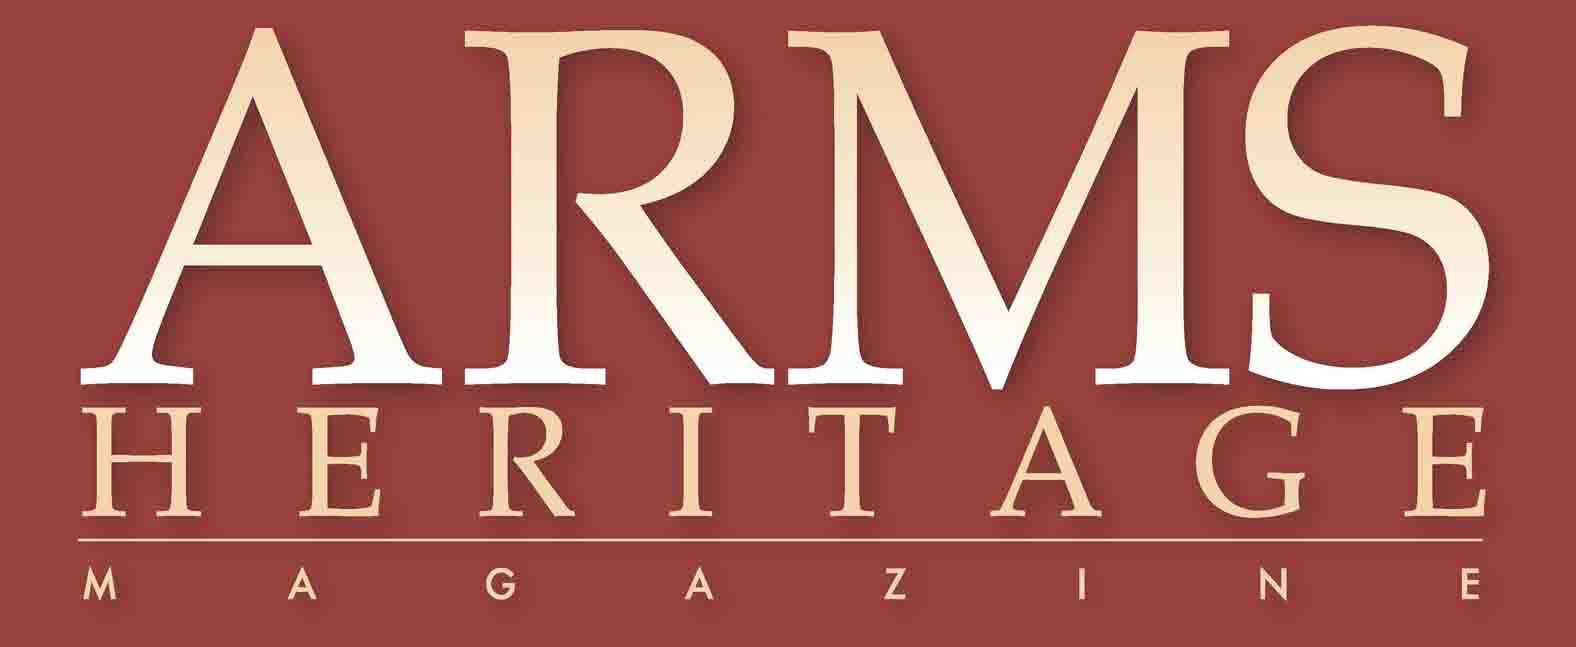 ARMS HERITAGE MAGAZINE - Volume 3, All Six Issues